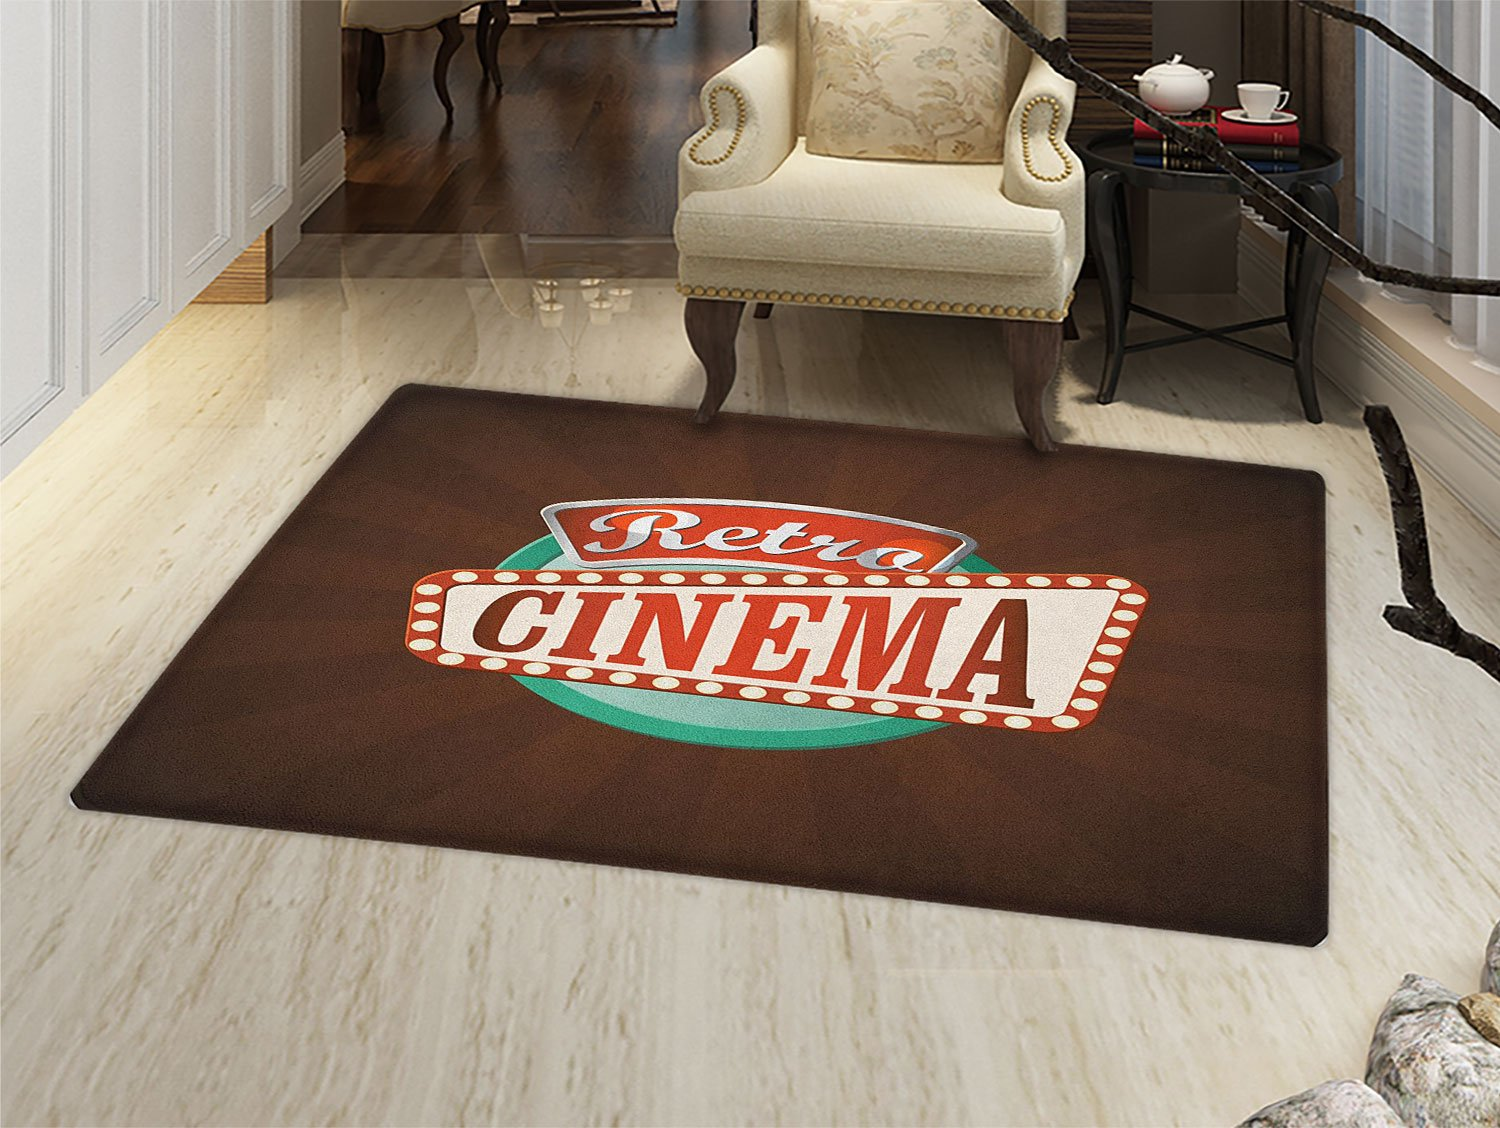 smallbeefly Movie Theater Door Mat indoors Retro Style Cinema Sign Design Film Festival Hollywood Theme Customize Bath Mat with Non Slip Backing Brown Turquoise Vermilion